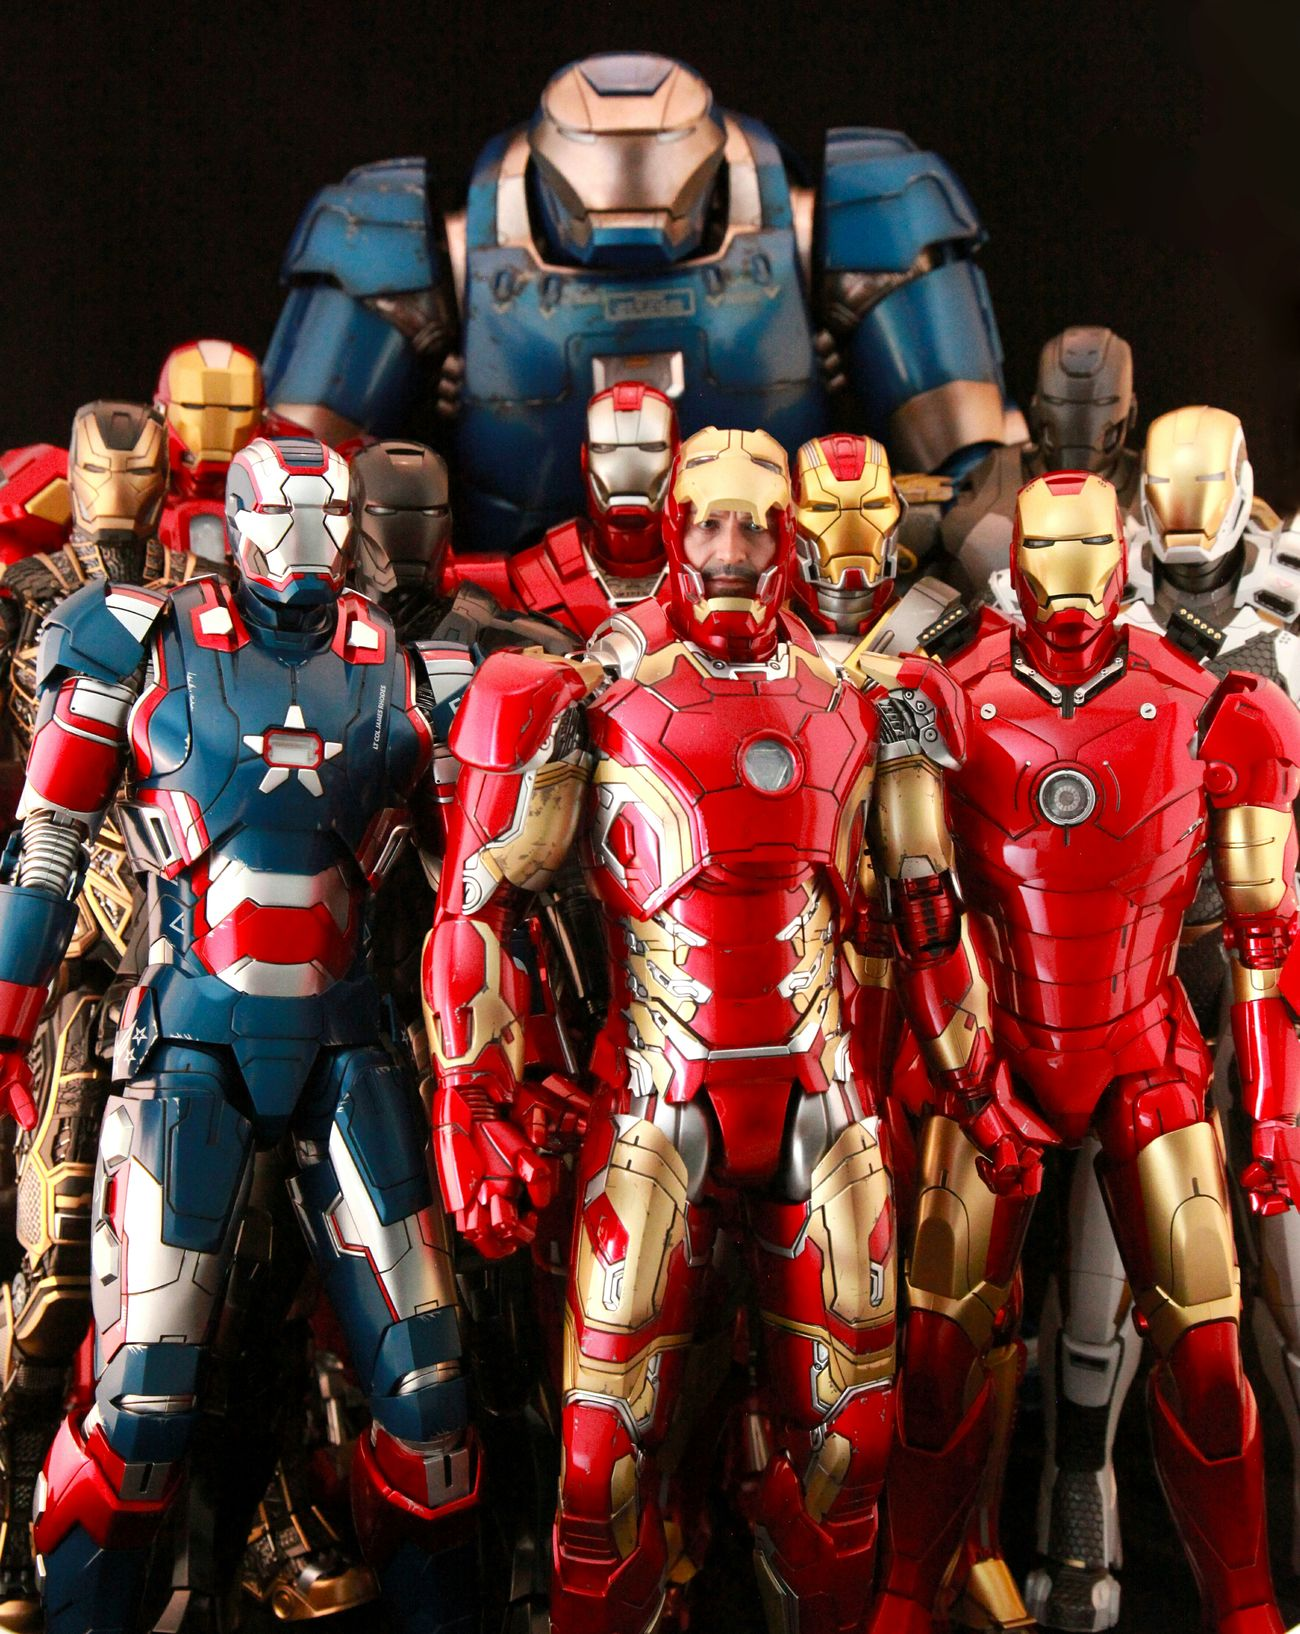 B Side. Civilwar Hottoys Ironman Marvel Onesixthscale Anarchyalliance Ata_dreadnoughts Toyphotography Ironlegion Housepartyprotocol Hallofarmor